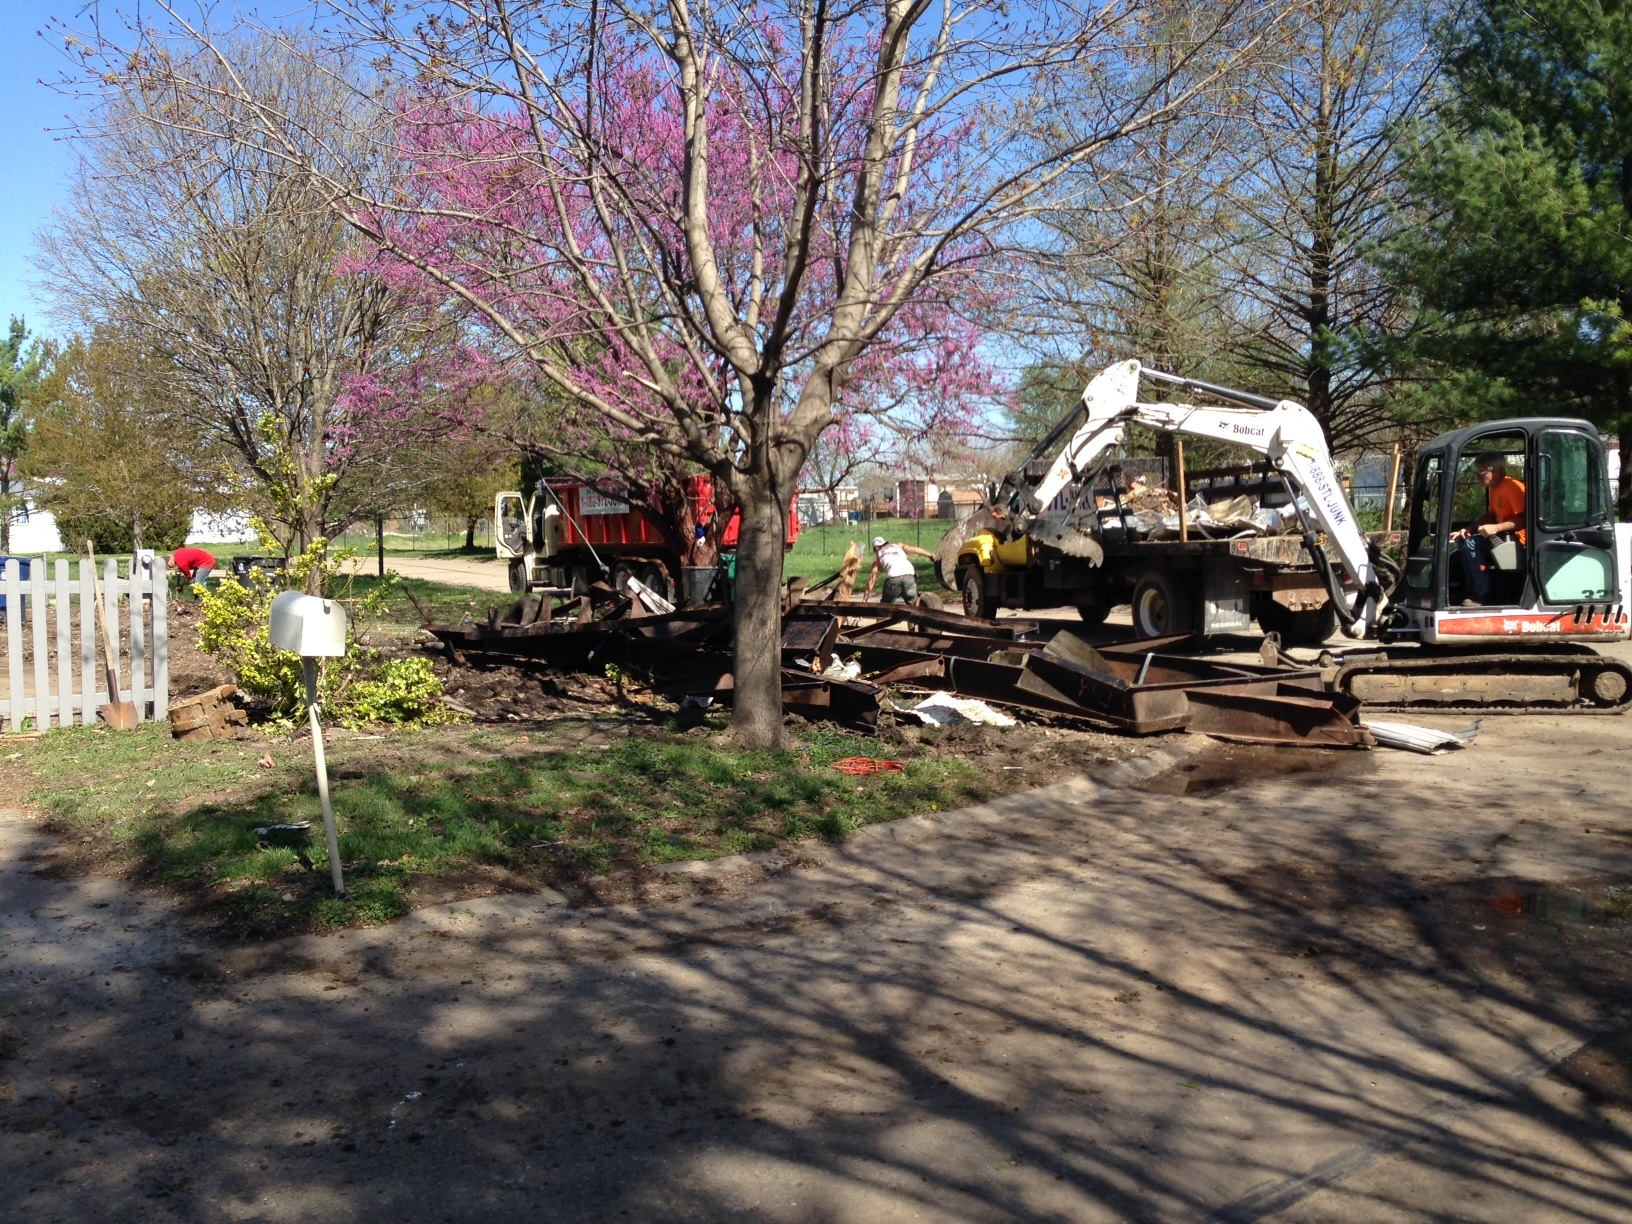 A recent mobile home demolition in St.Charles, MO